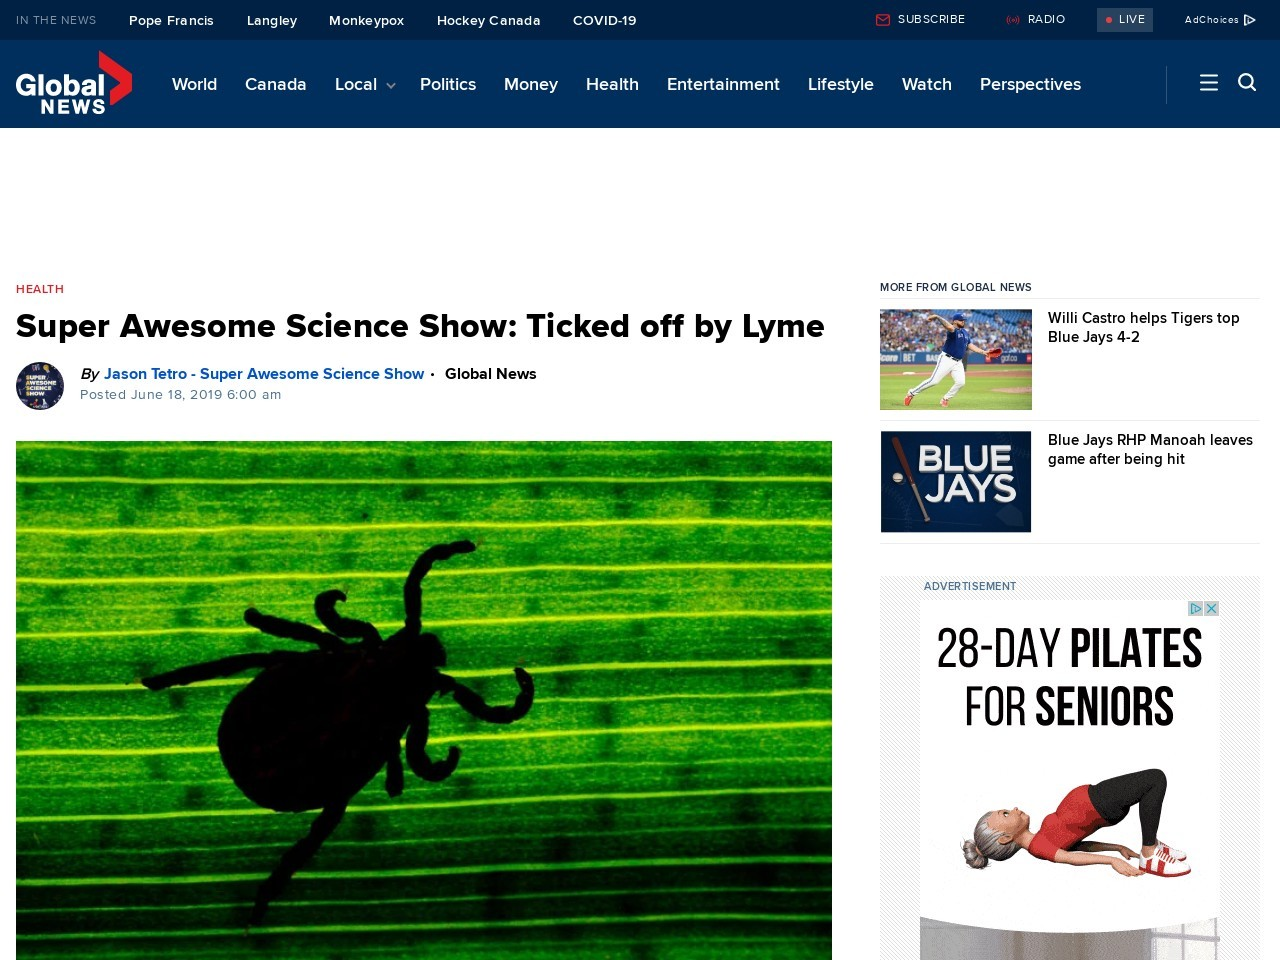 Super Awesome Science Show: Ticked off by Lyme